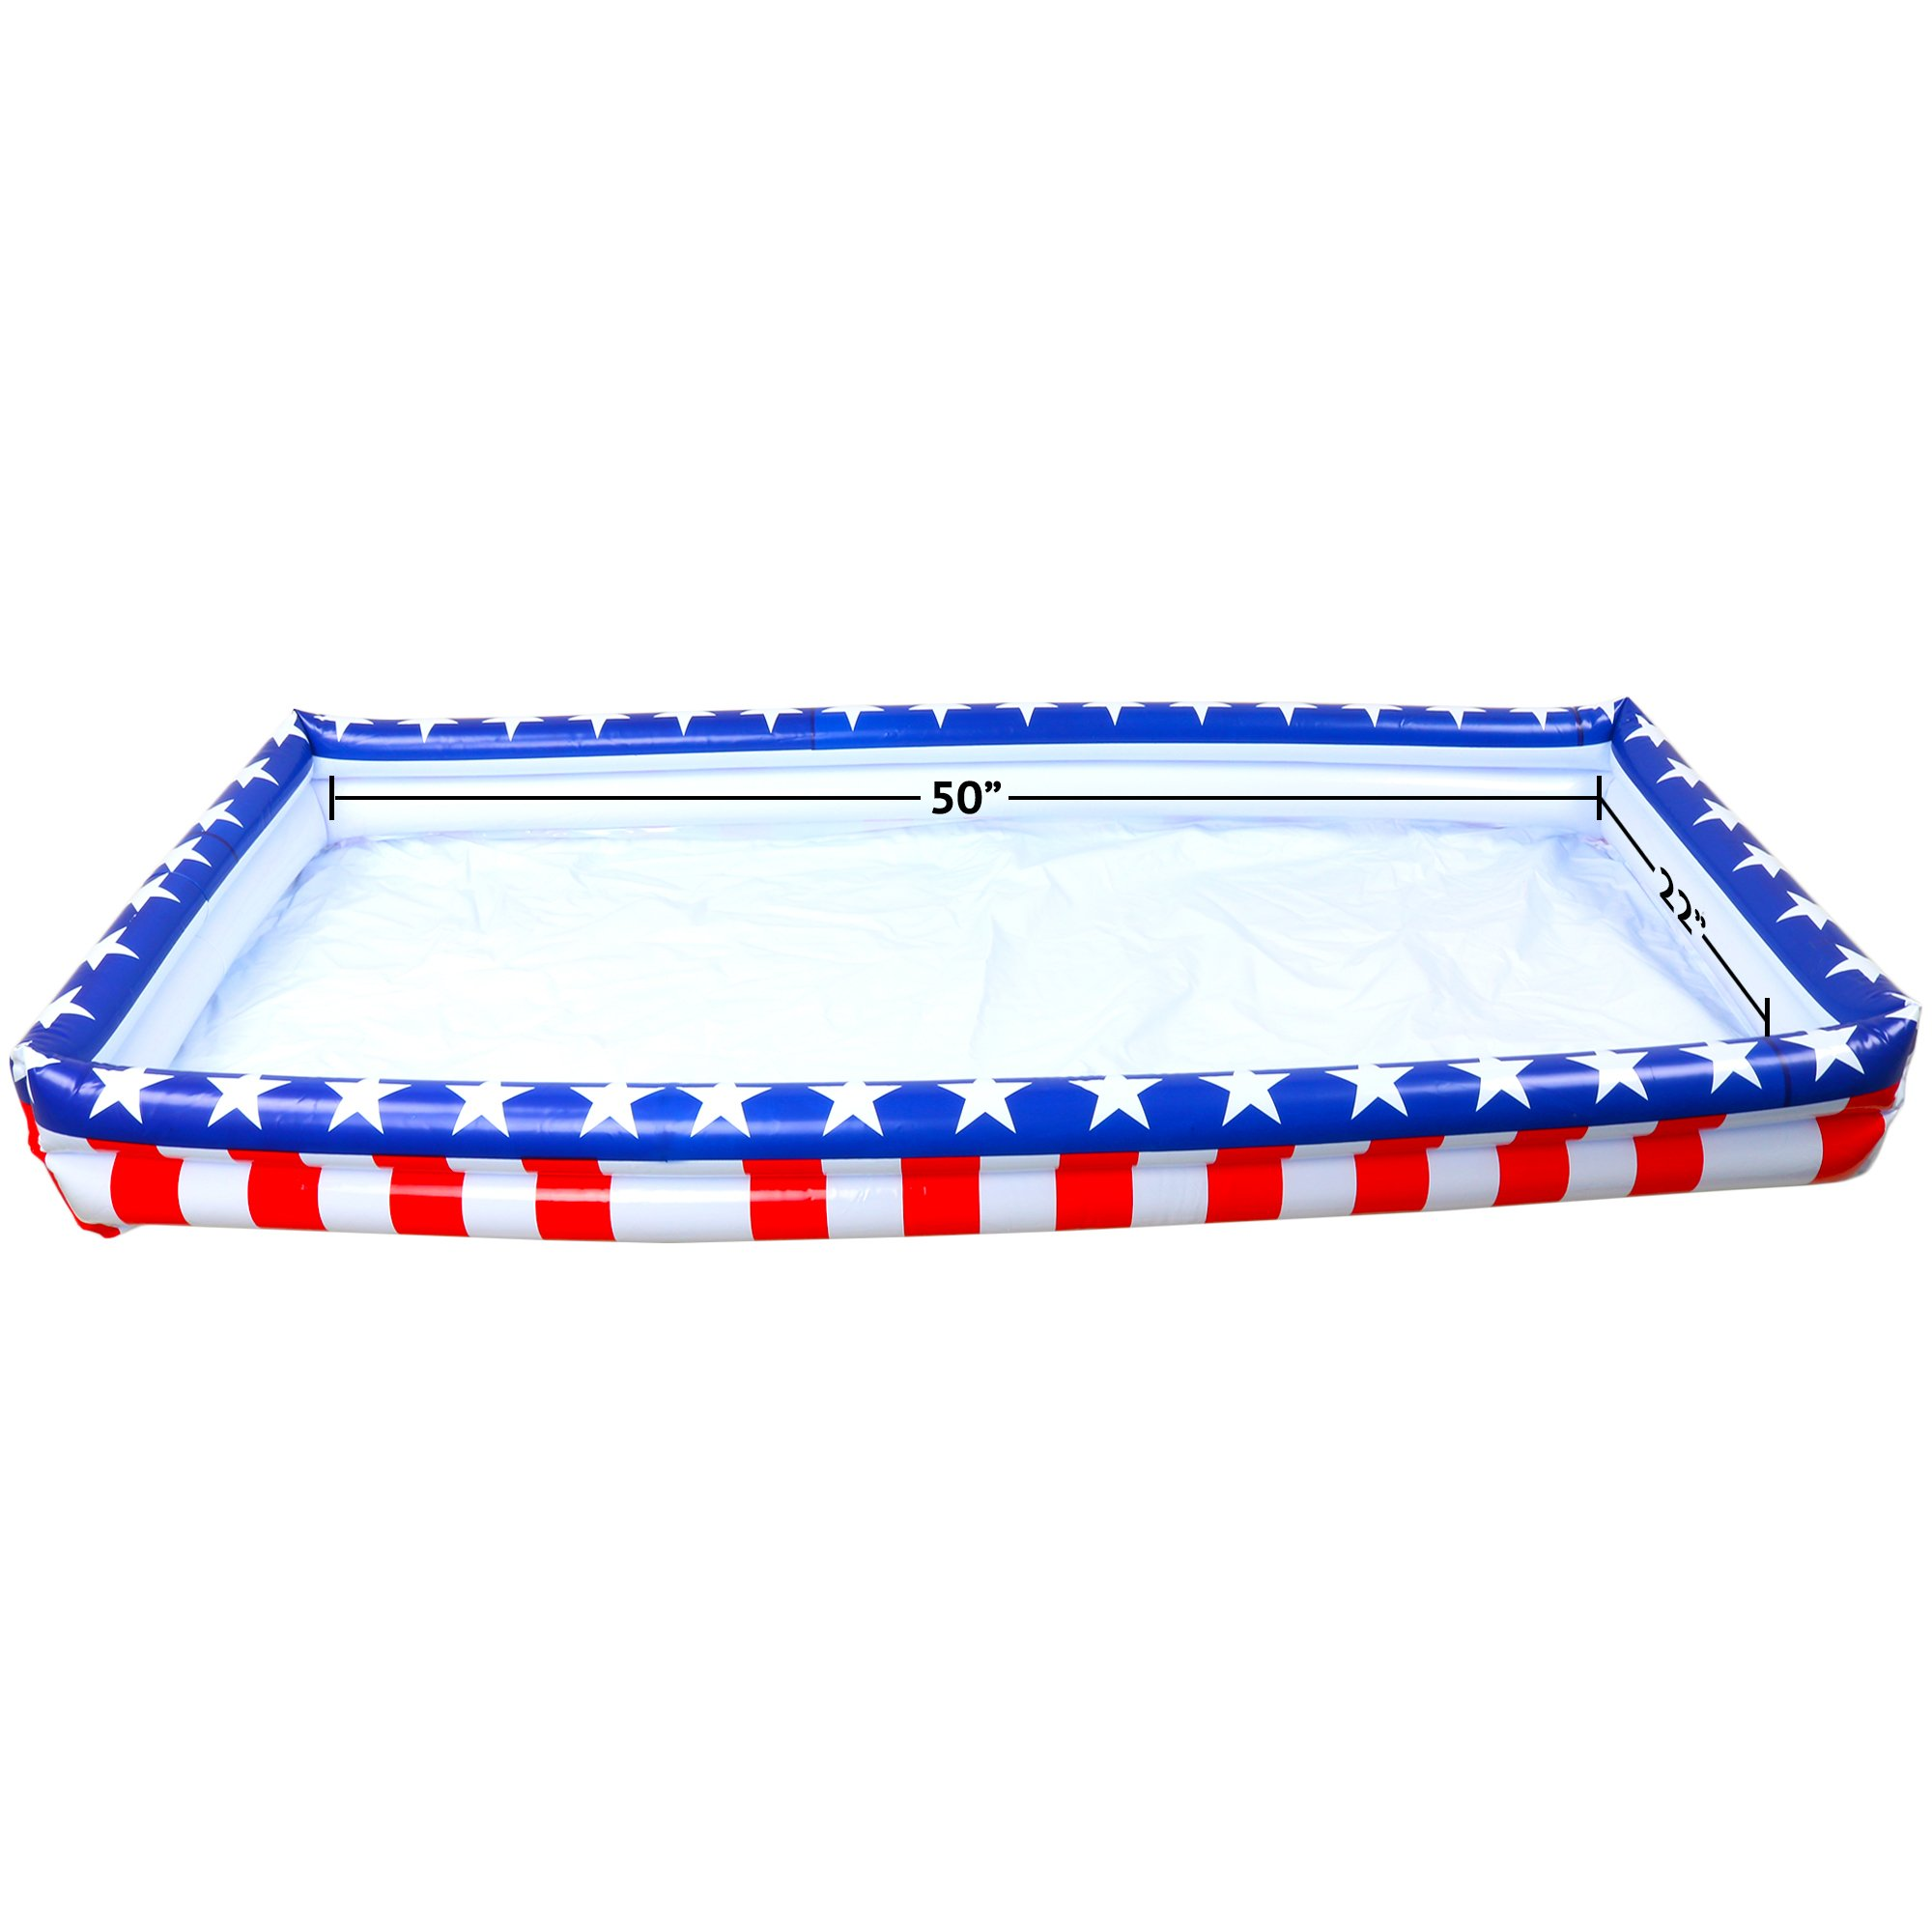 Outdoor Inflatable Buffet Cooler Server - Patriotic Red White and Blue Blow Up Cooling Tub for Serving Buffet Style Picnic - Pack of 2 by Big Mo's Toys (Image #5)